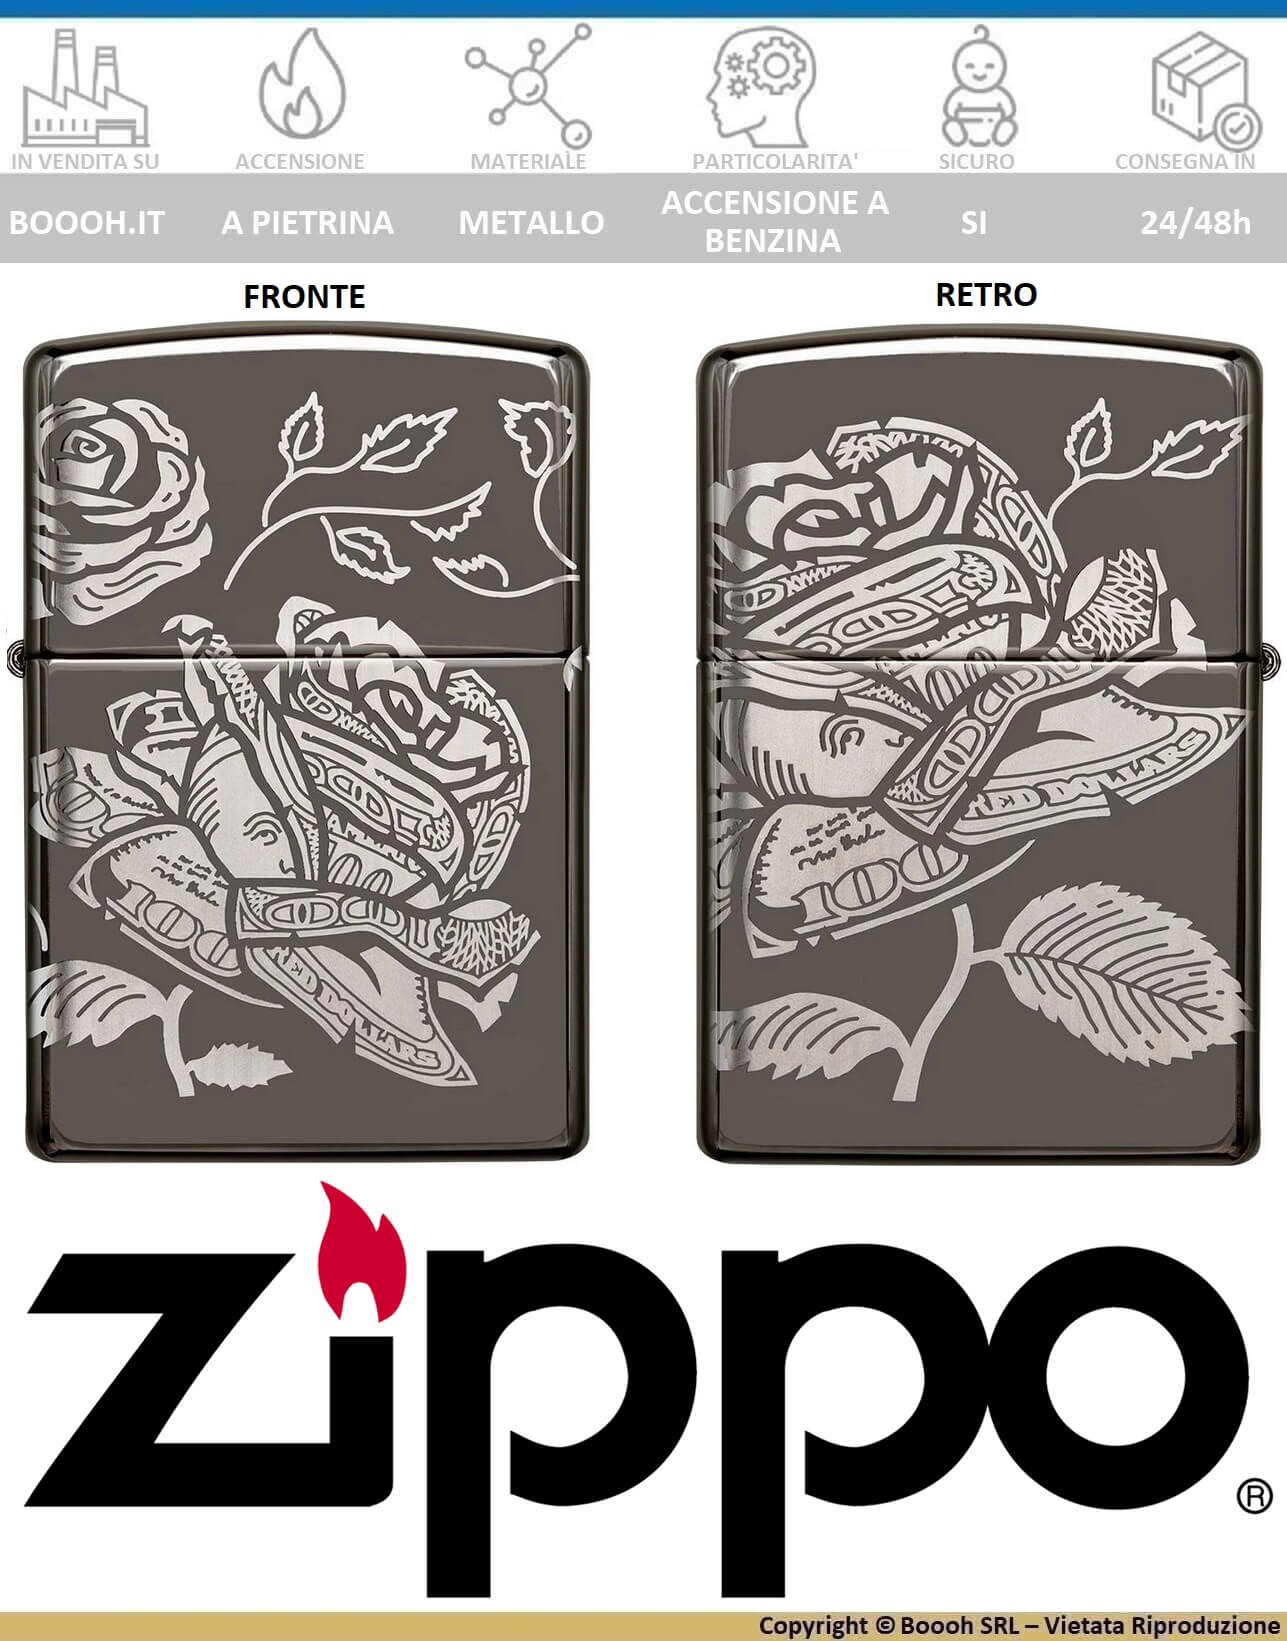 zippo-black-ice-360-currency-design-accendini-benzina-antivento-orginaLE